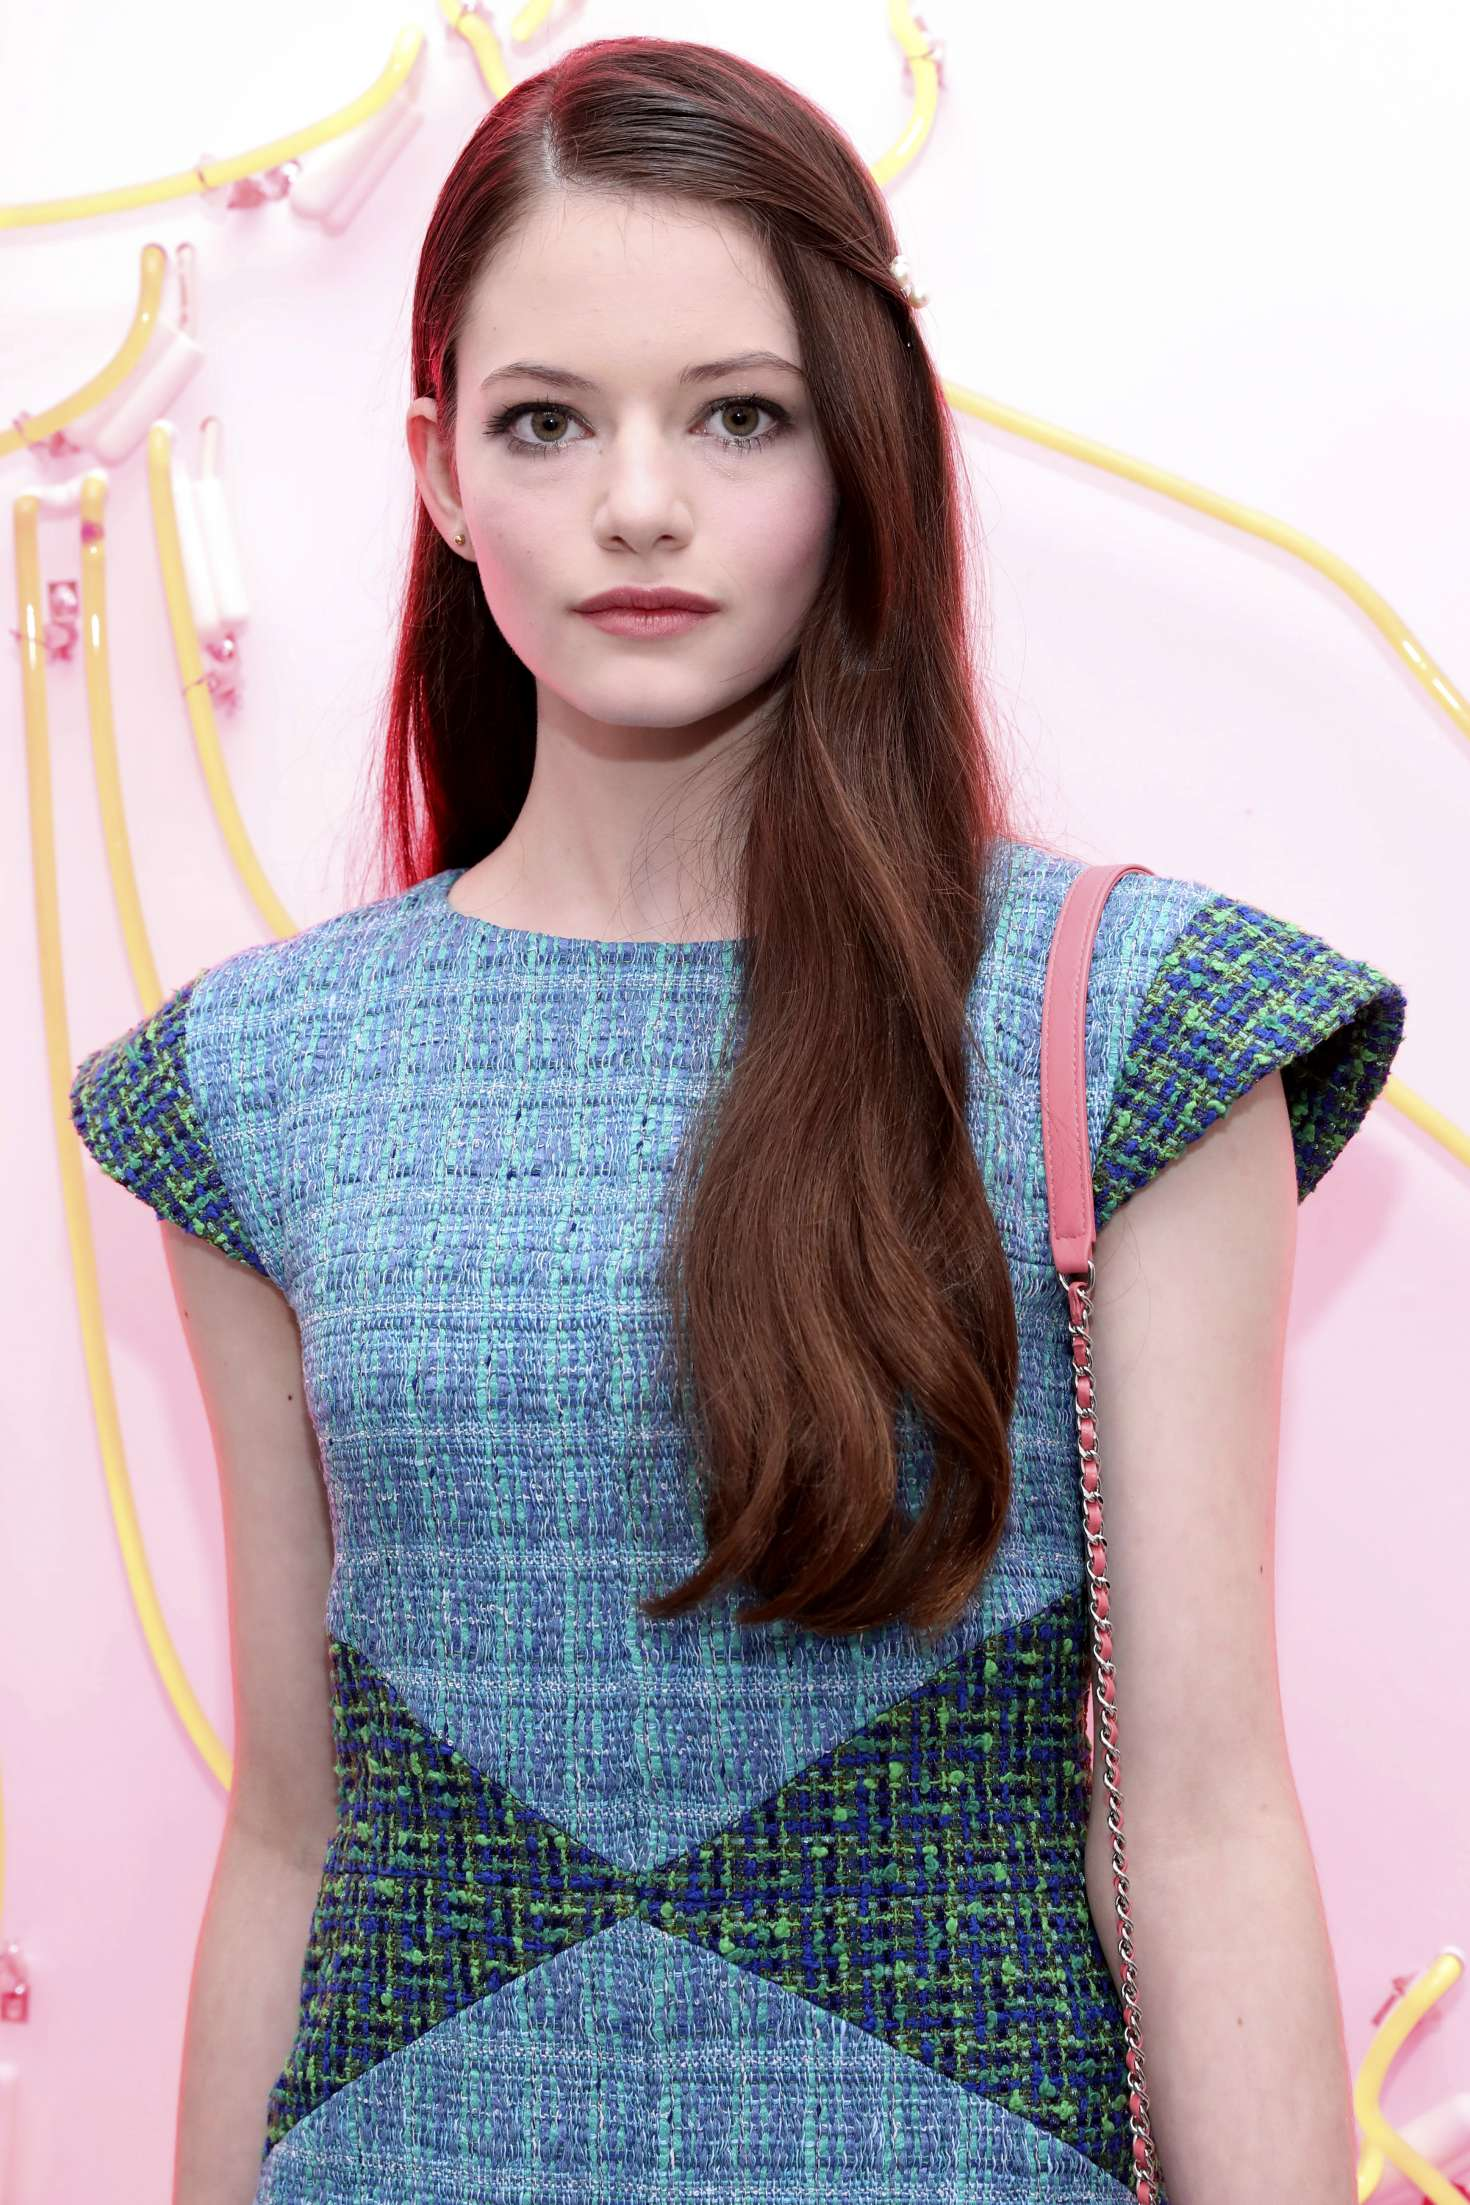 Mackenzie Foy nude (46 foto and video), Sexy, Fappening, Selfie, cameltoe 2017